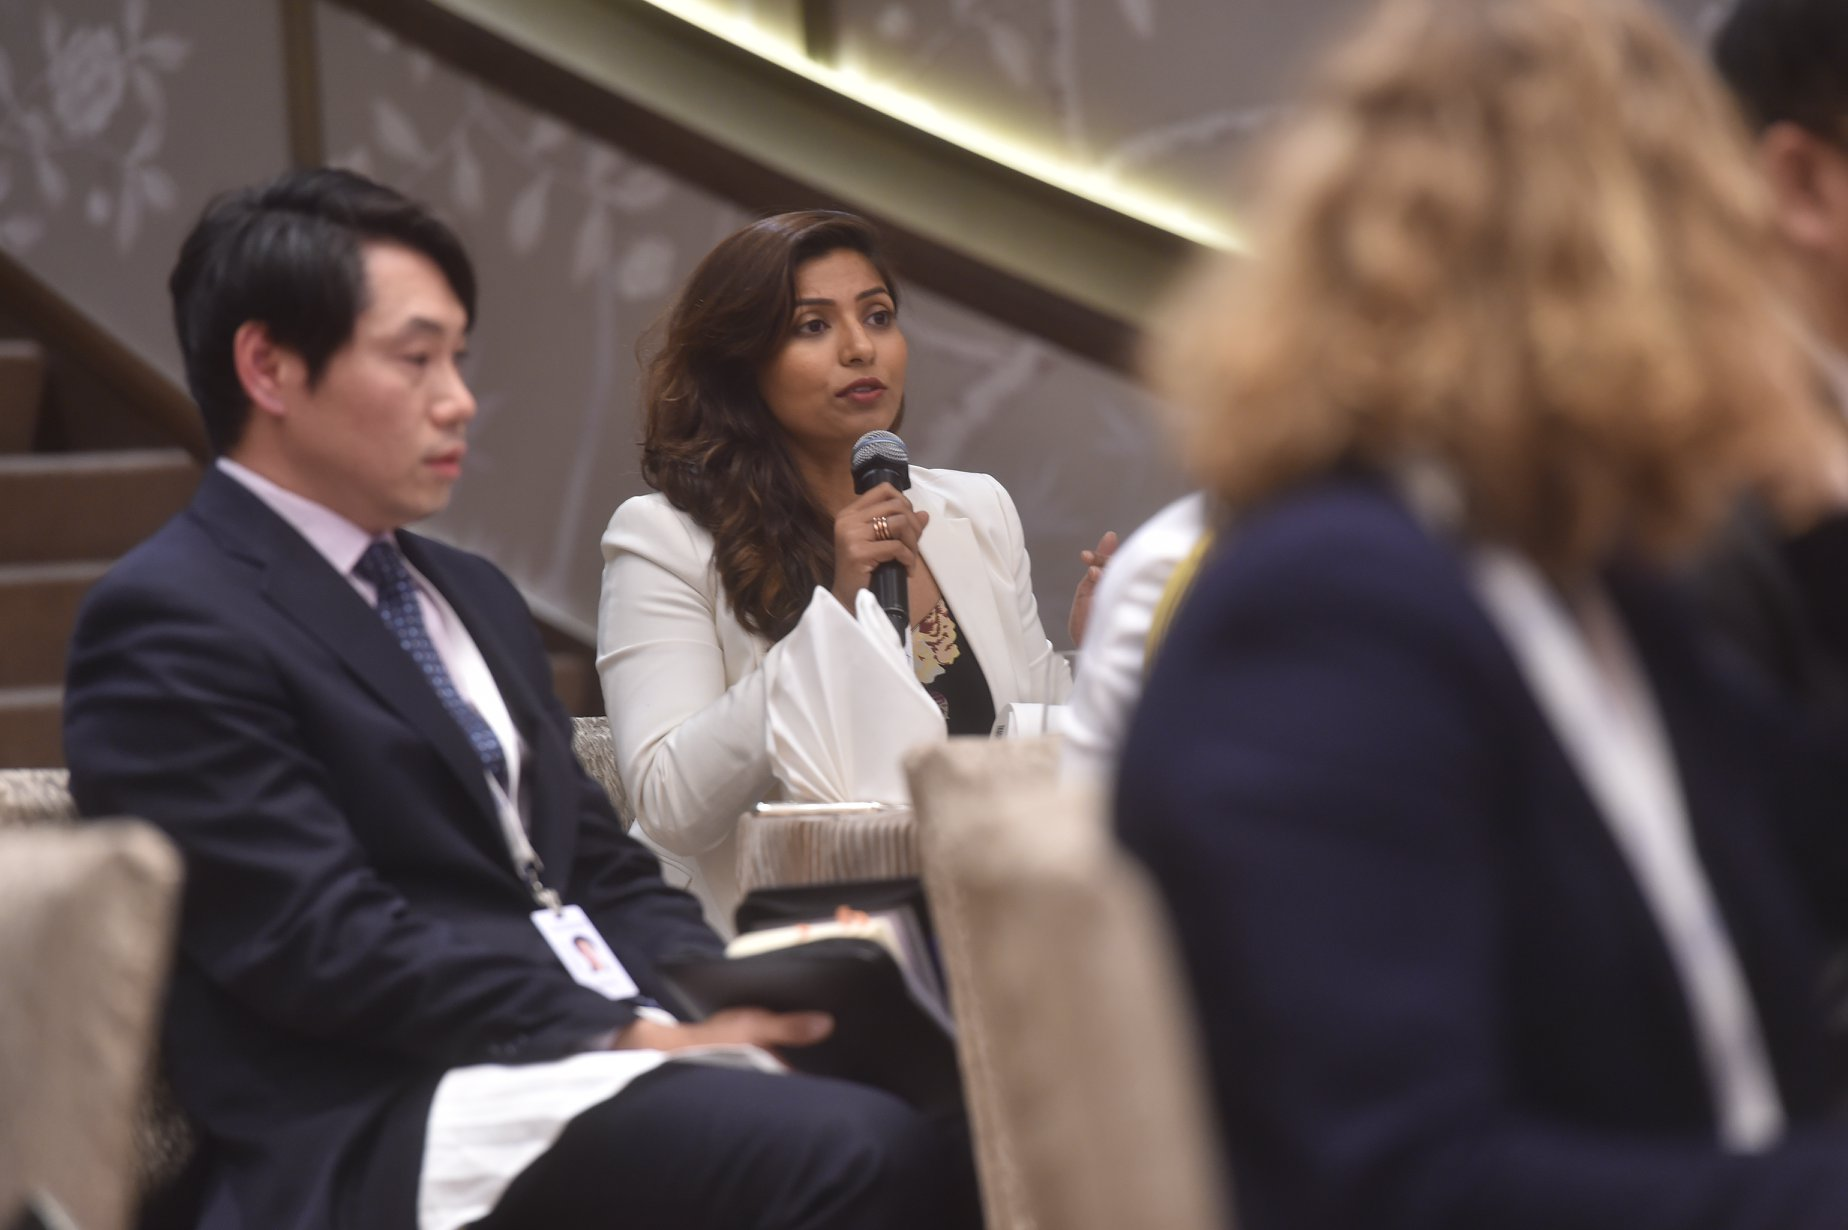 Gullnaz Baig, APAC Head, Terrorism Policy, Facebook, contributing to the discussion at the Shangri-La Dialogue Sherpa Meeting in Singapore.